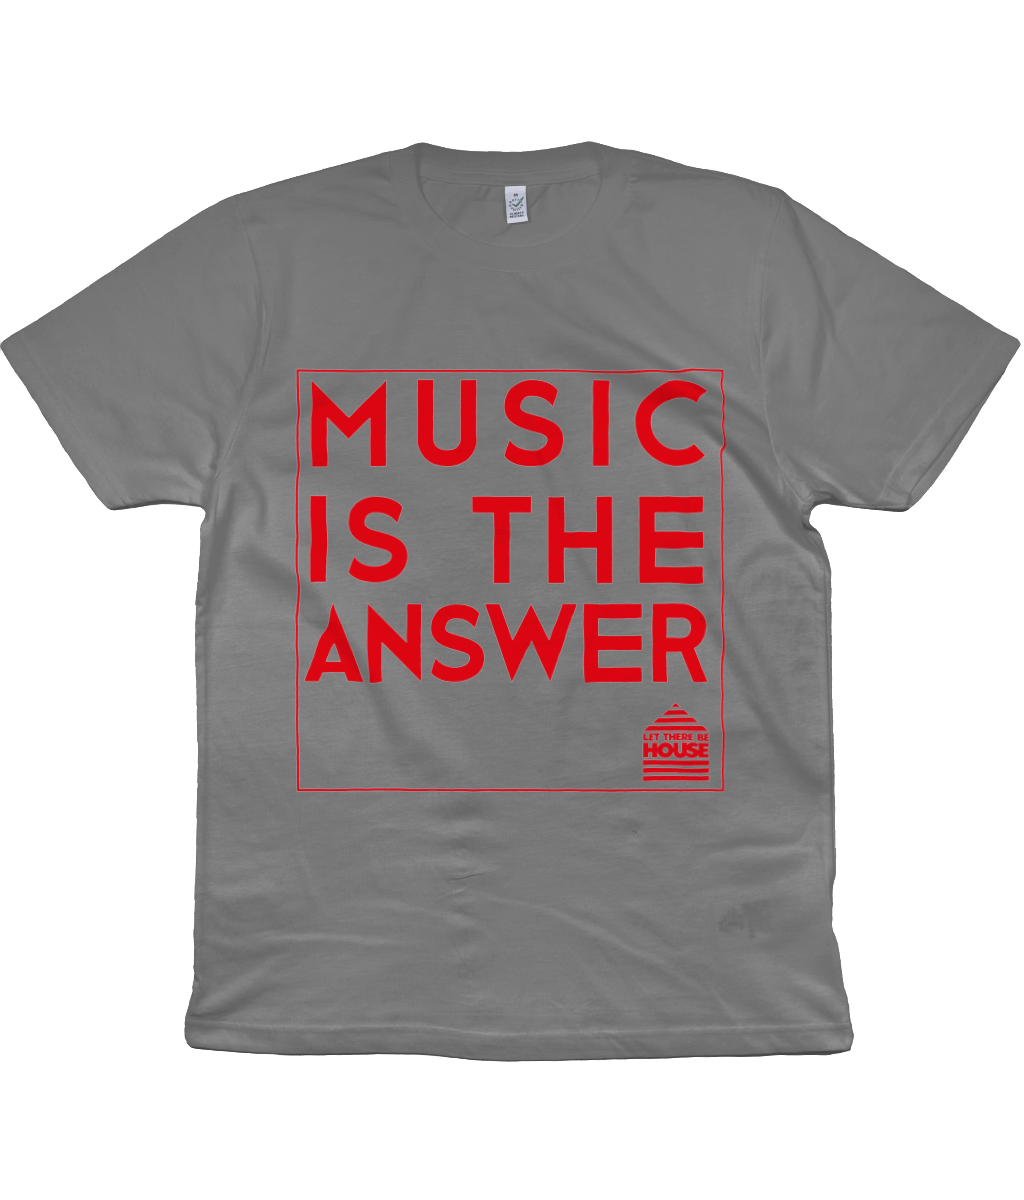 T-Shirt Music Red